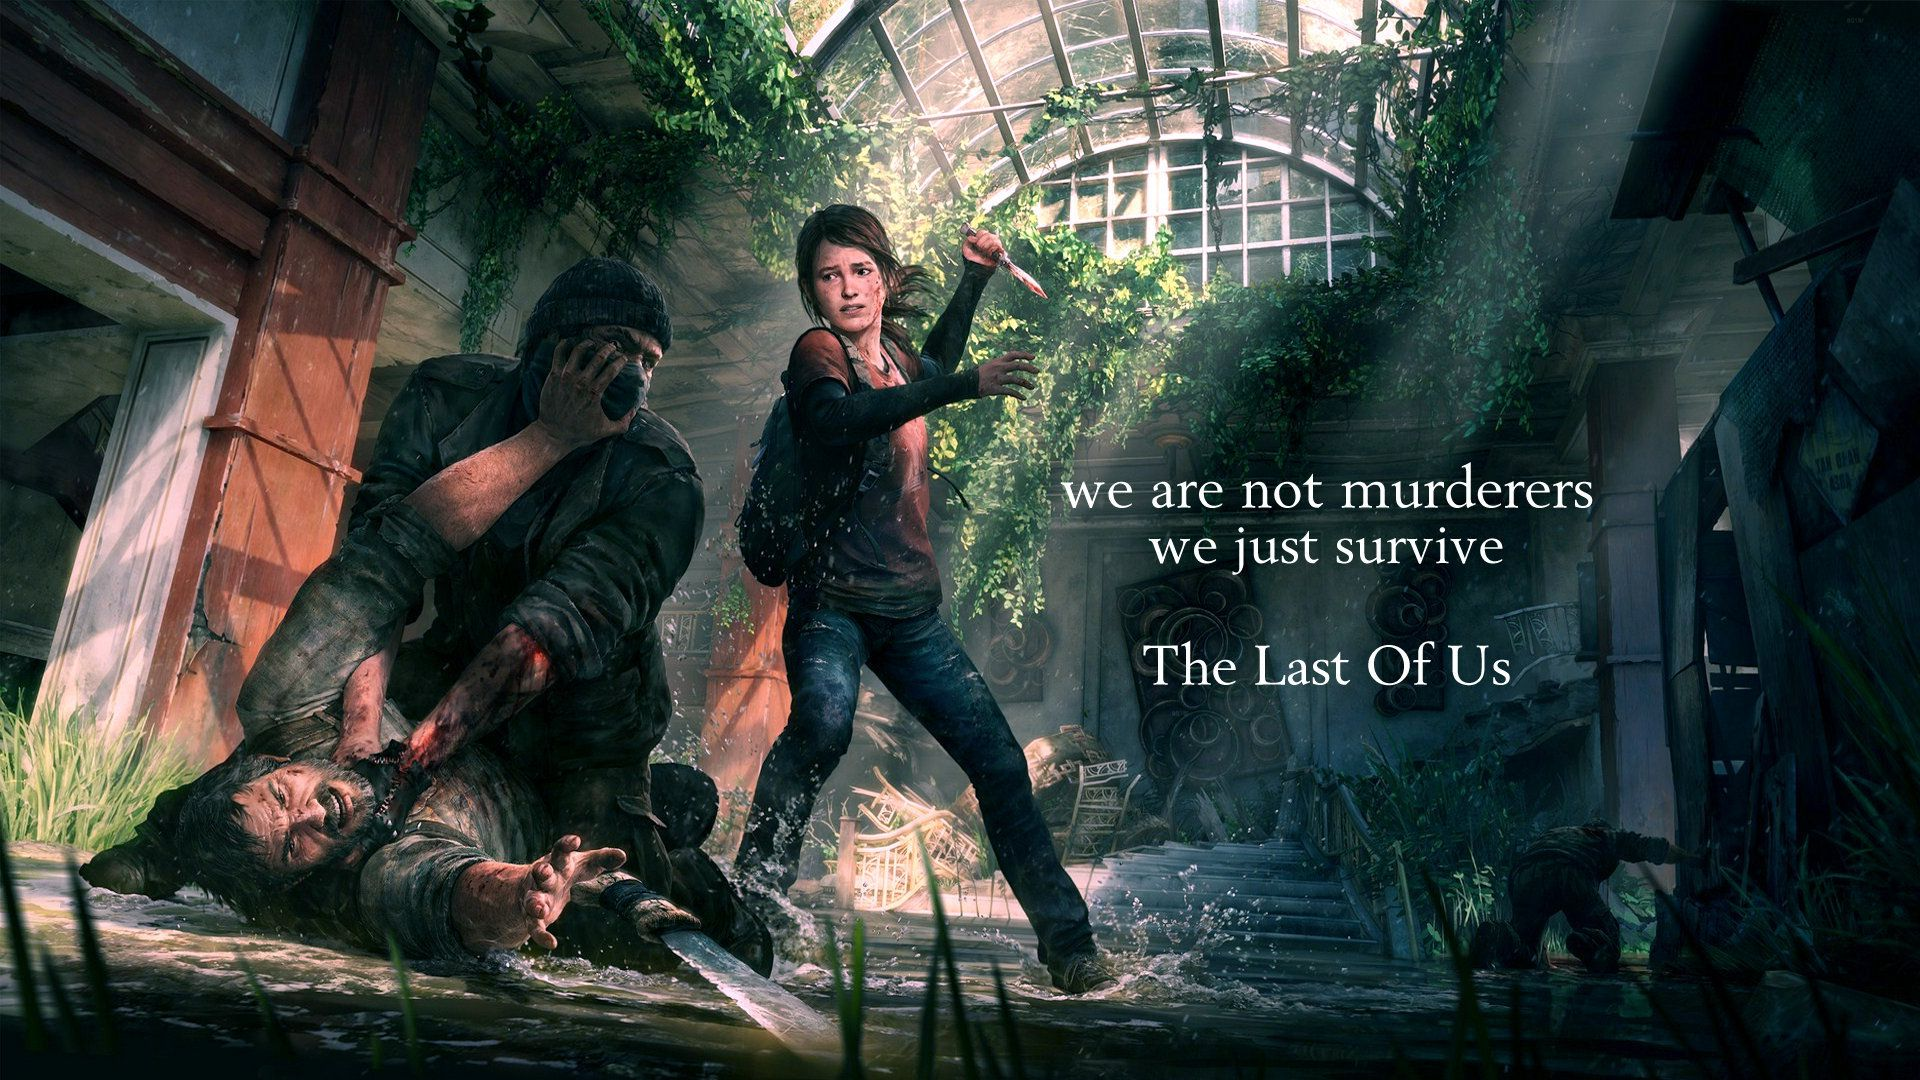 The Last Of Us Wallpaper HD Ideas for the House Last of us 1920x1080